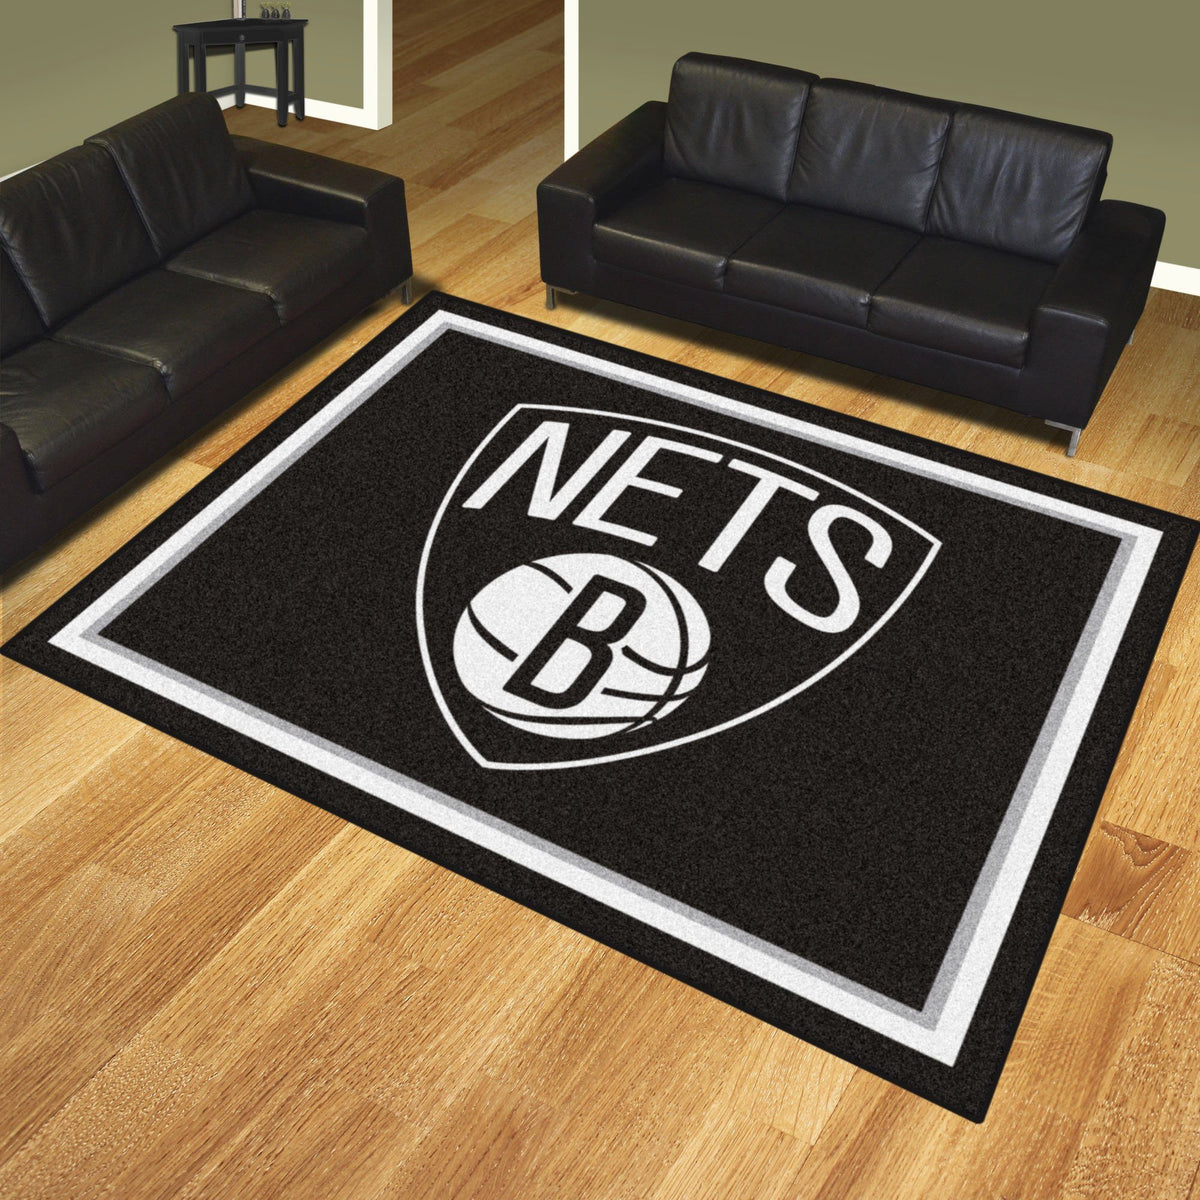 NBA - 8' x 10' Rug NBA Mats, Plush Rugs, 8x10 Rug, NBA, Home Fan Mats Brooklyn Nets